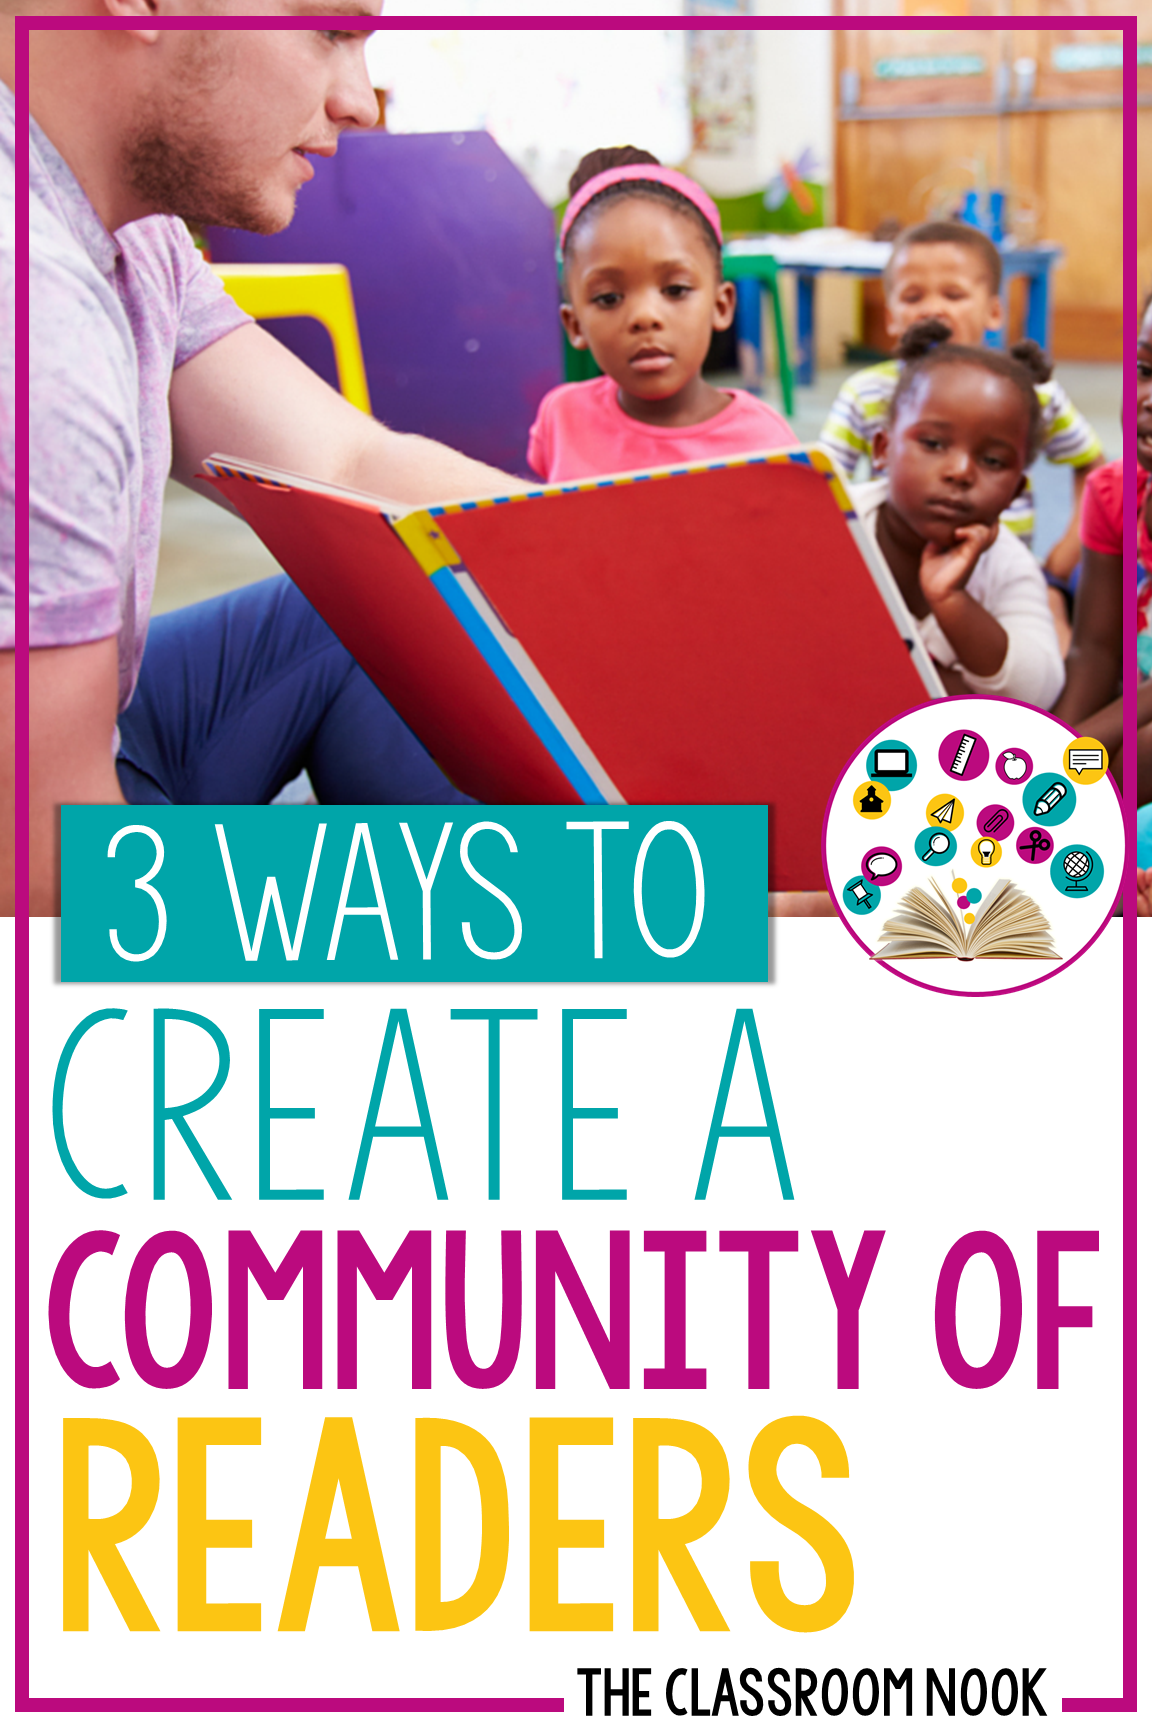 These 3 simple ideas will help you establish a positive community of readers in your classroom! Find tips for getting students excited about reading with their classmates #classroomcommunity #readers